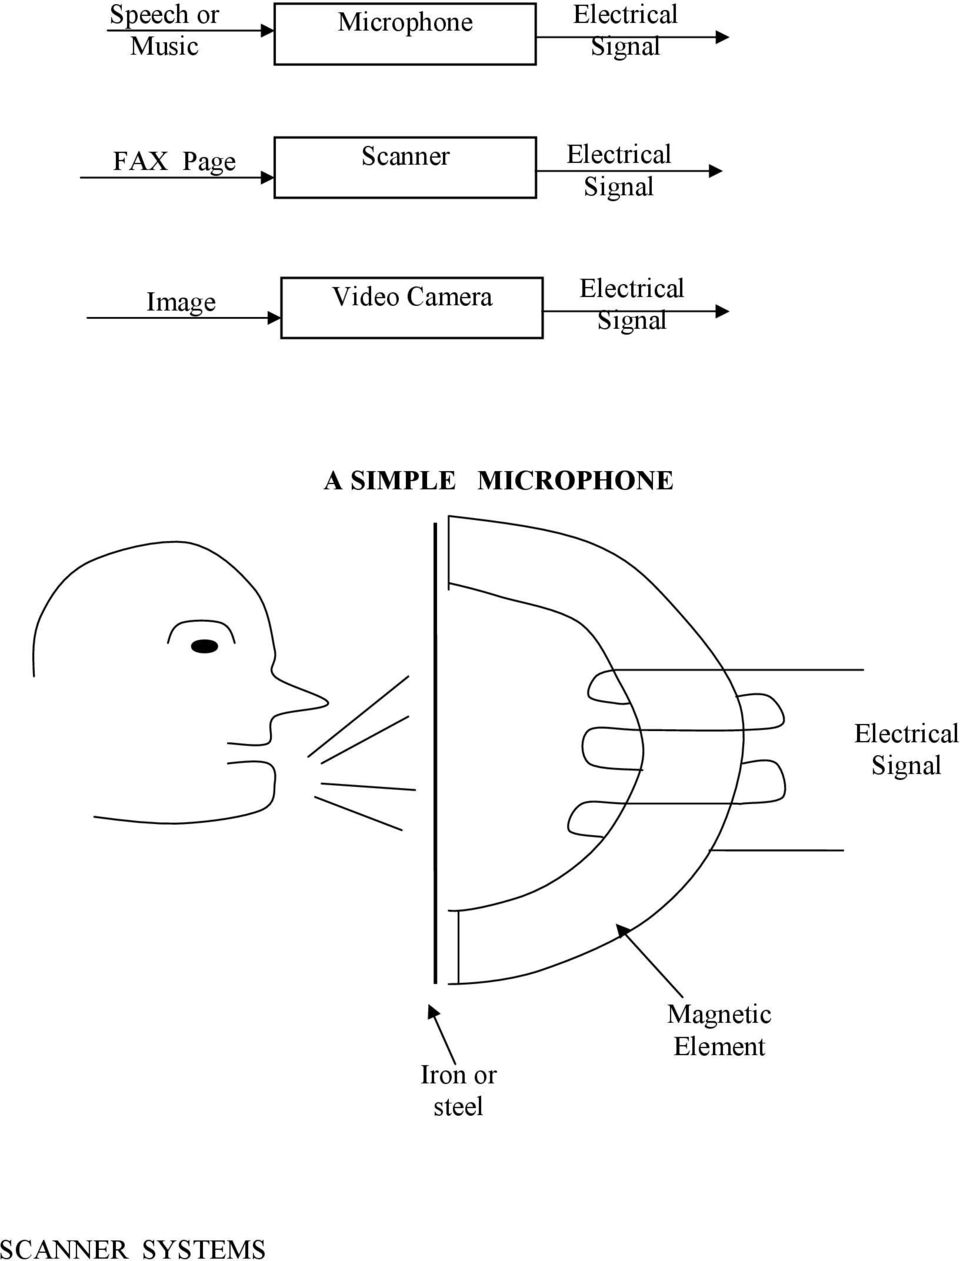 Electrical Signal A SIMPLE MICROPHONE Electrical